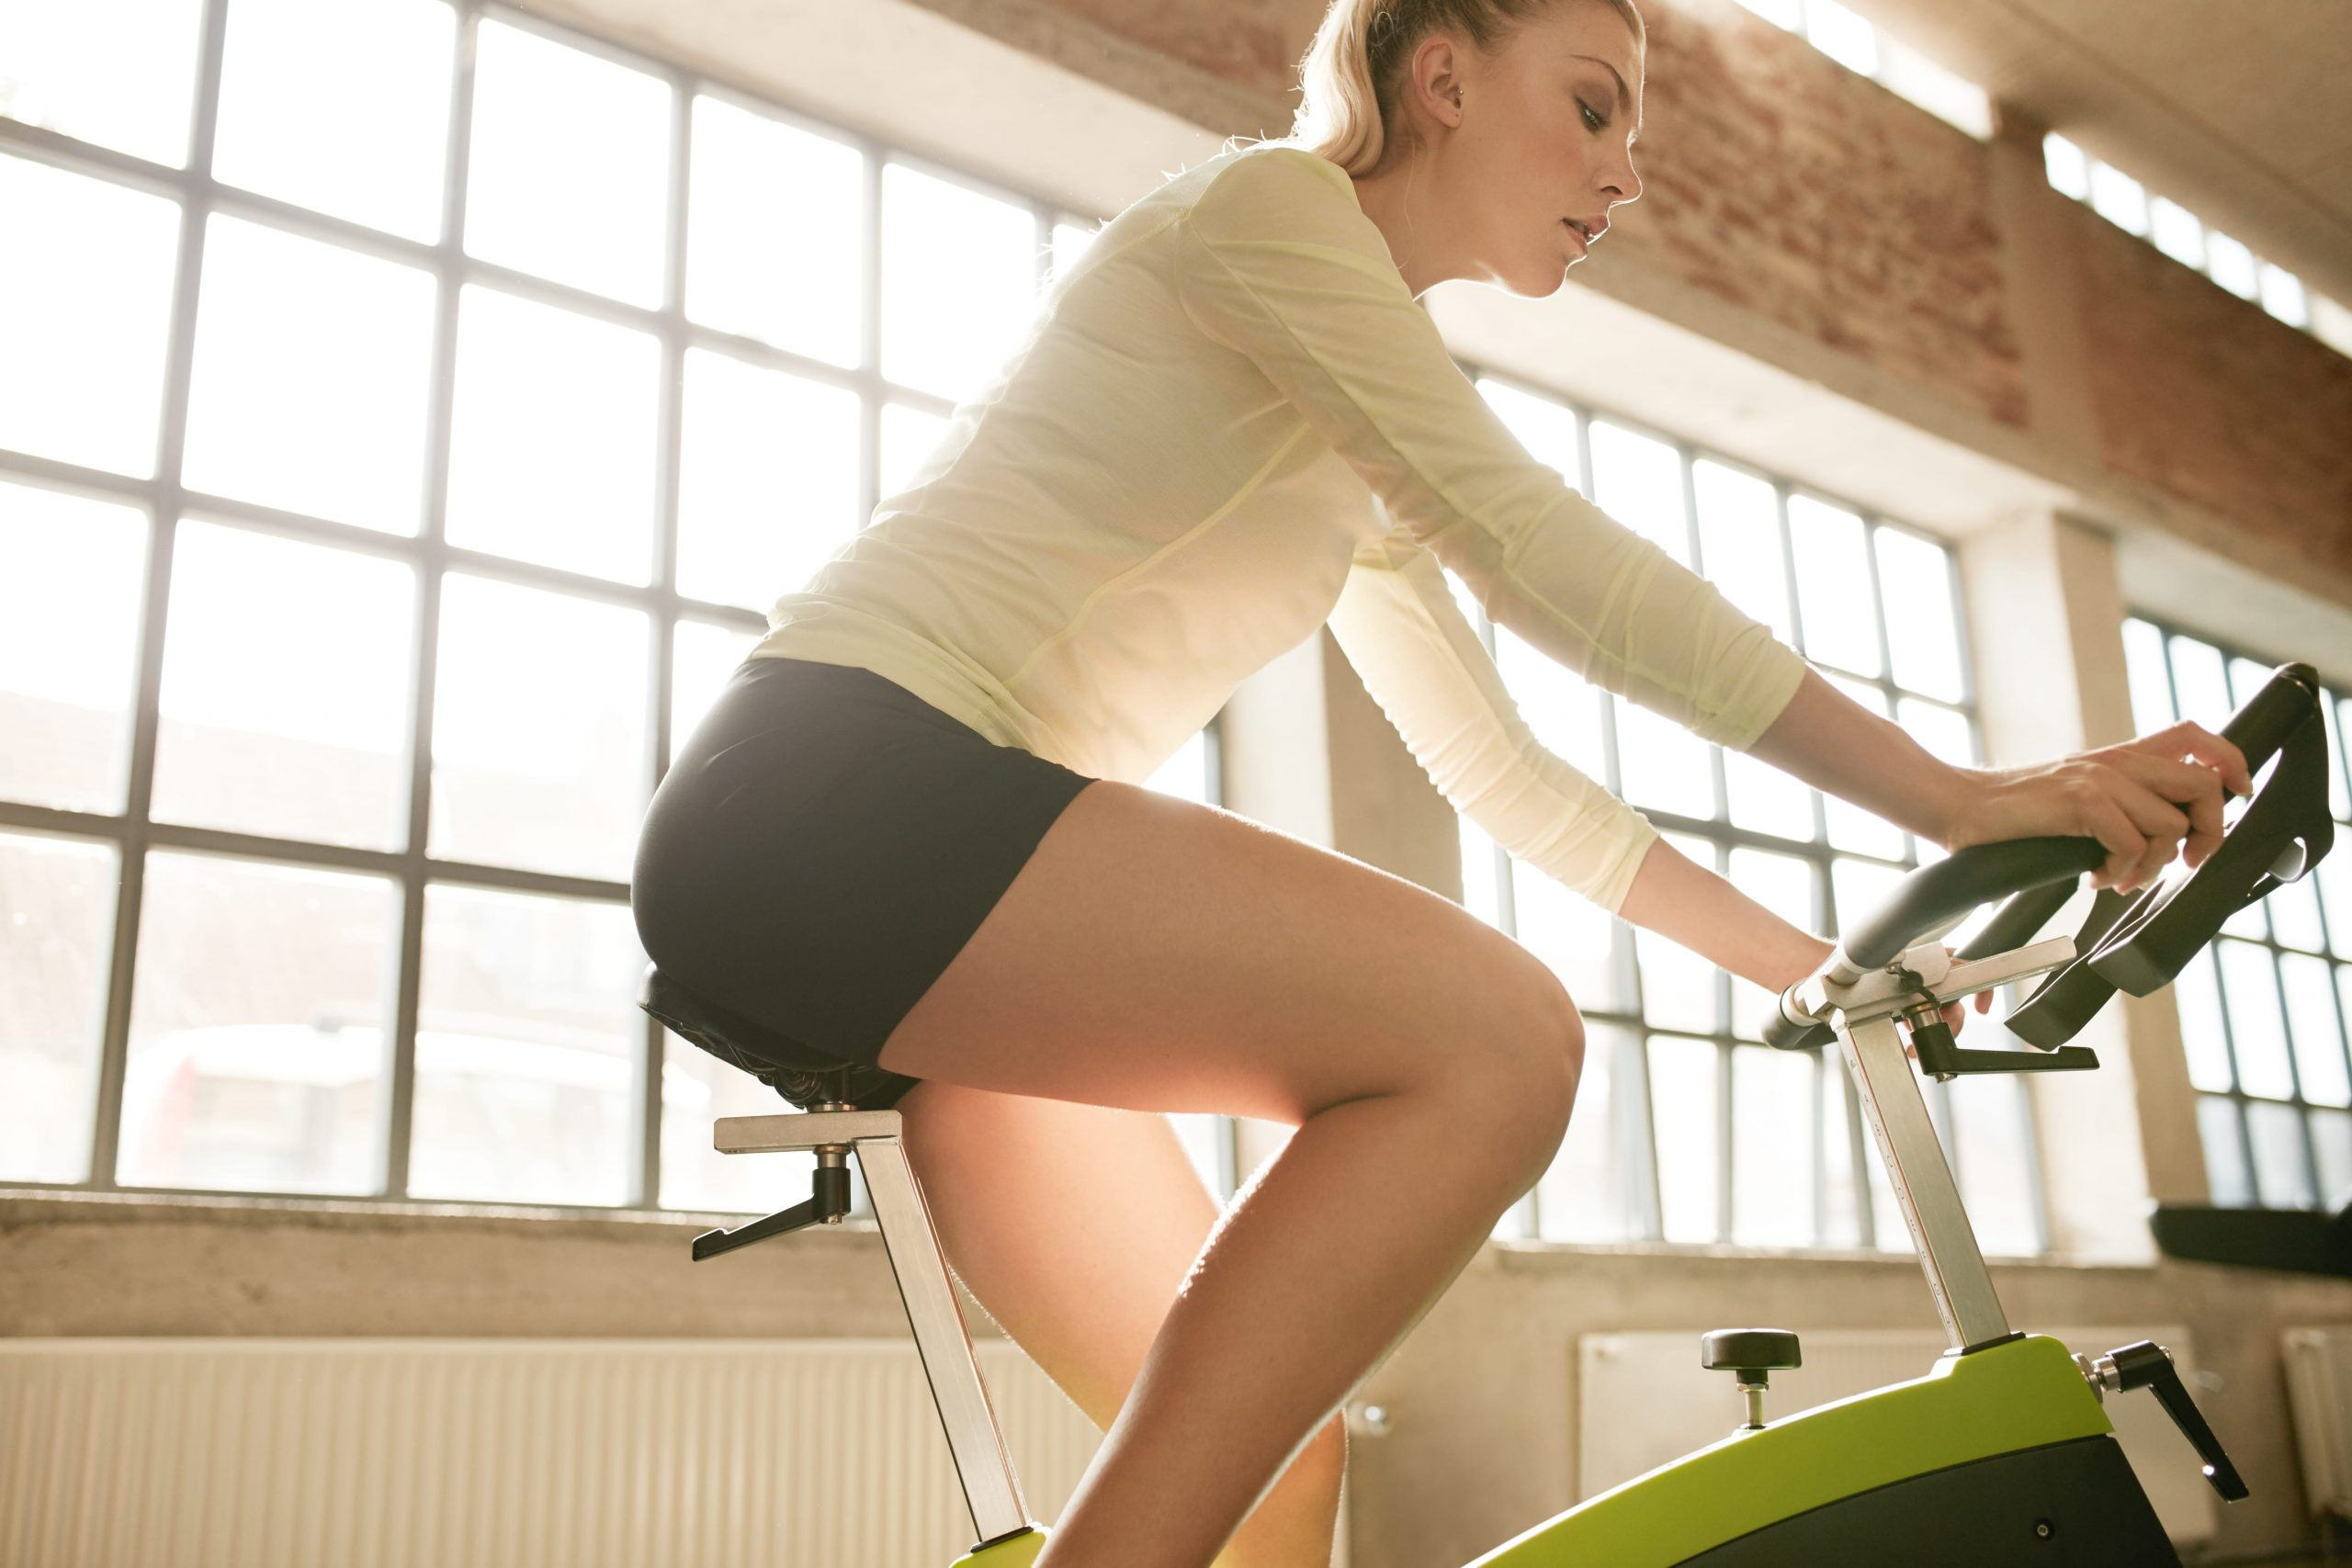 fitness woman on bicycle in gym P66RAPA min 1 scaled